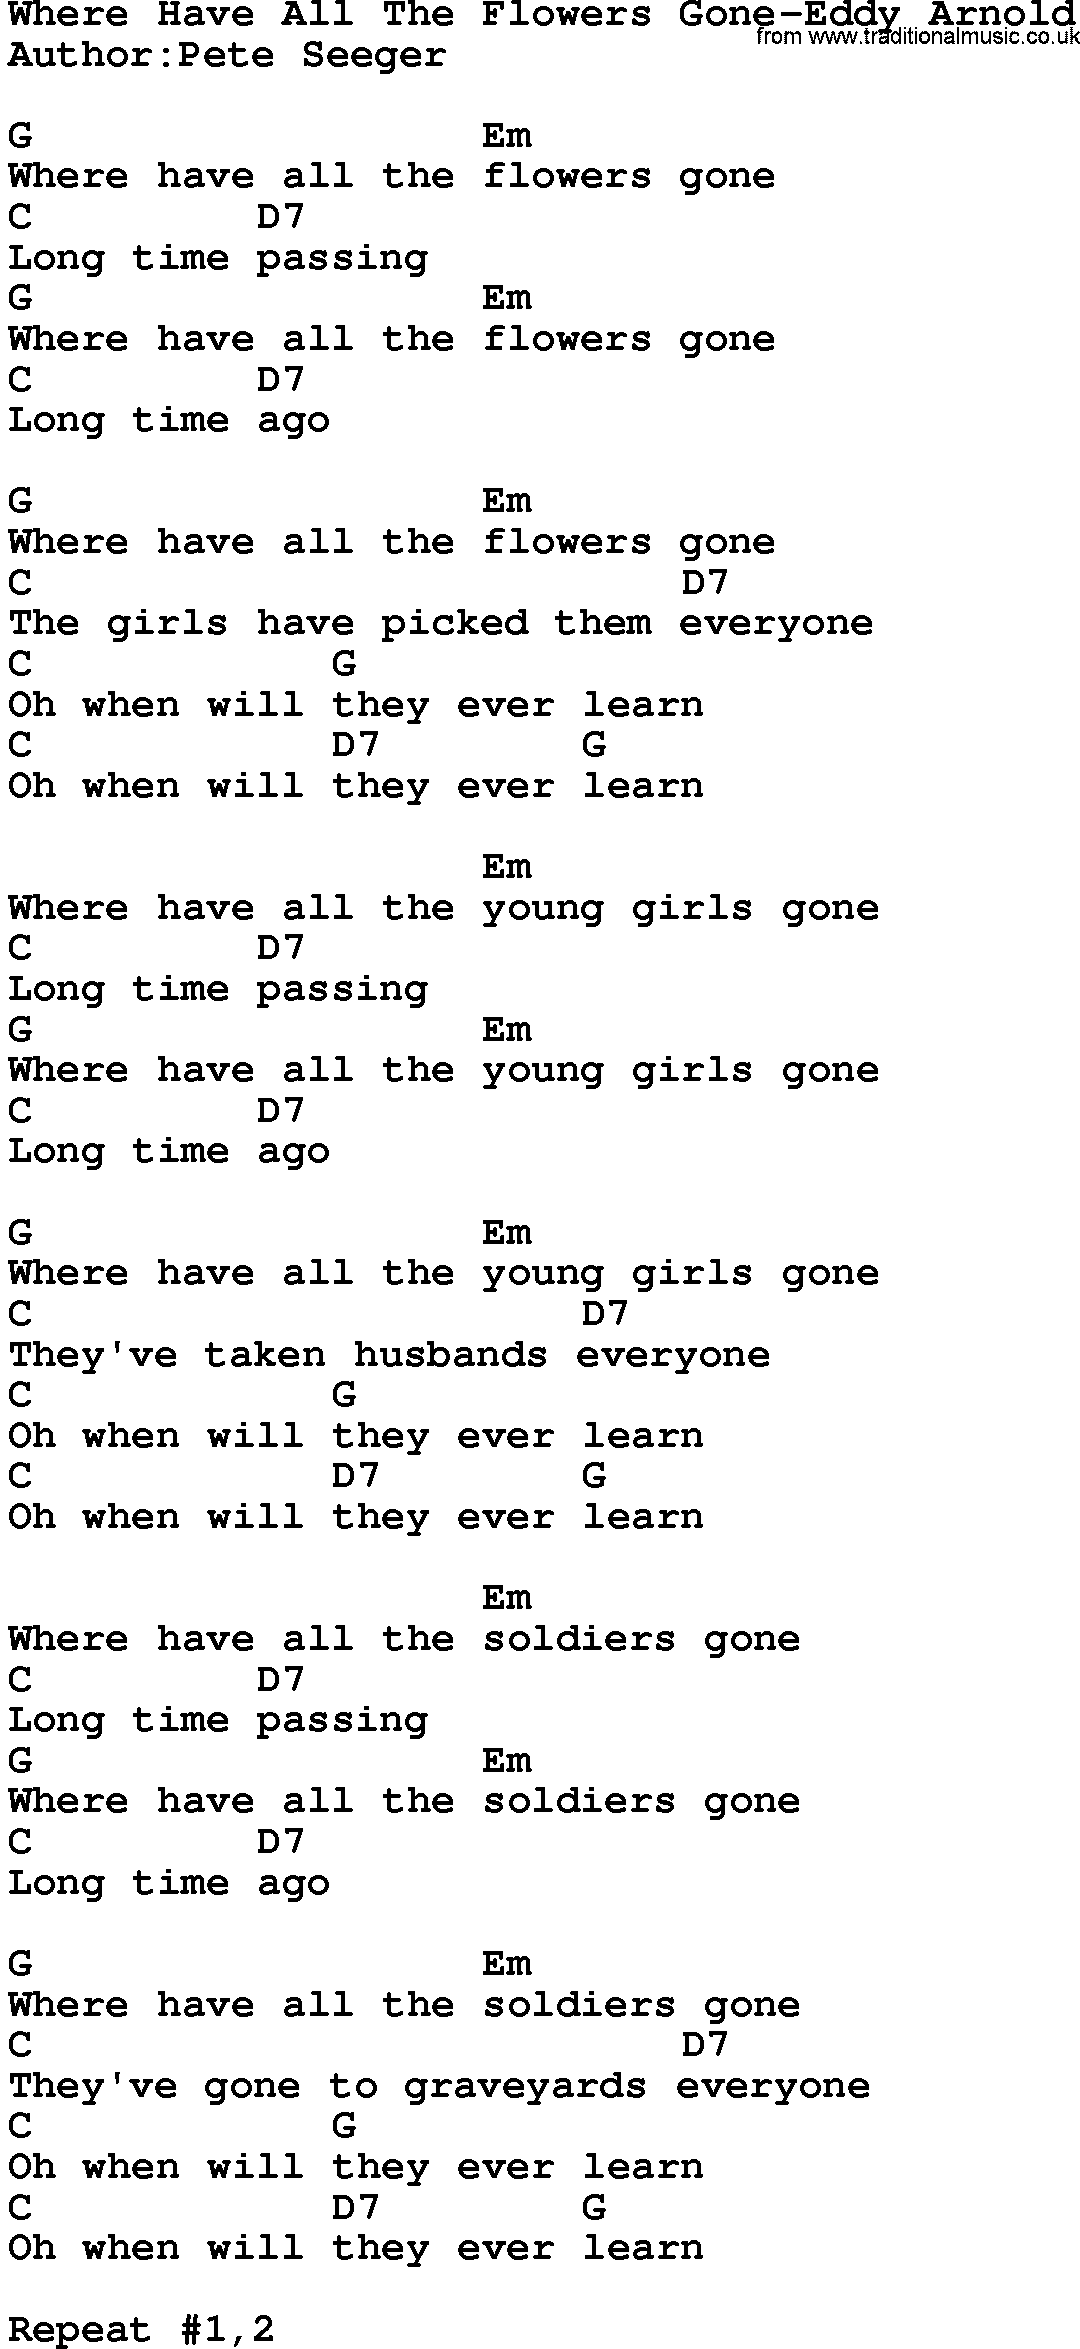 Country Musicwhere Have All The Flowers Gone Eddy Arnold Lyrics And